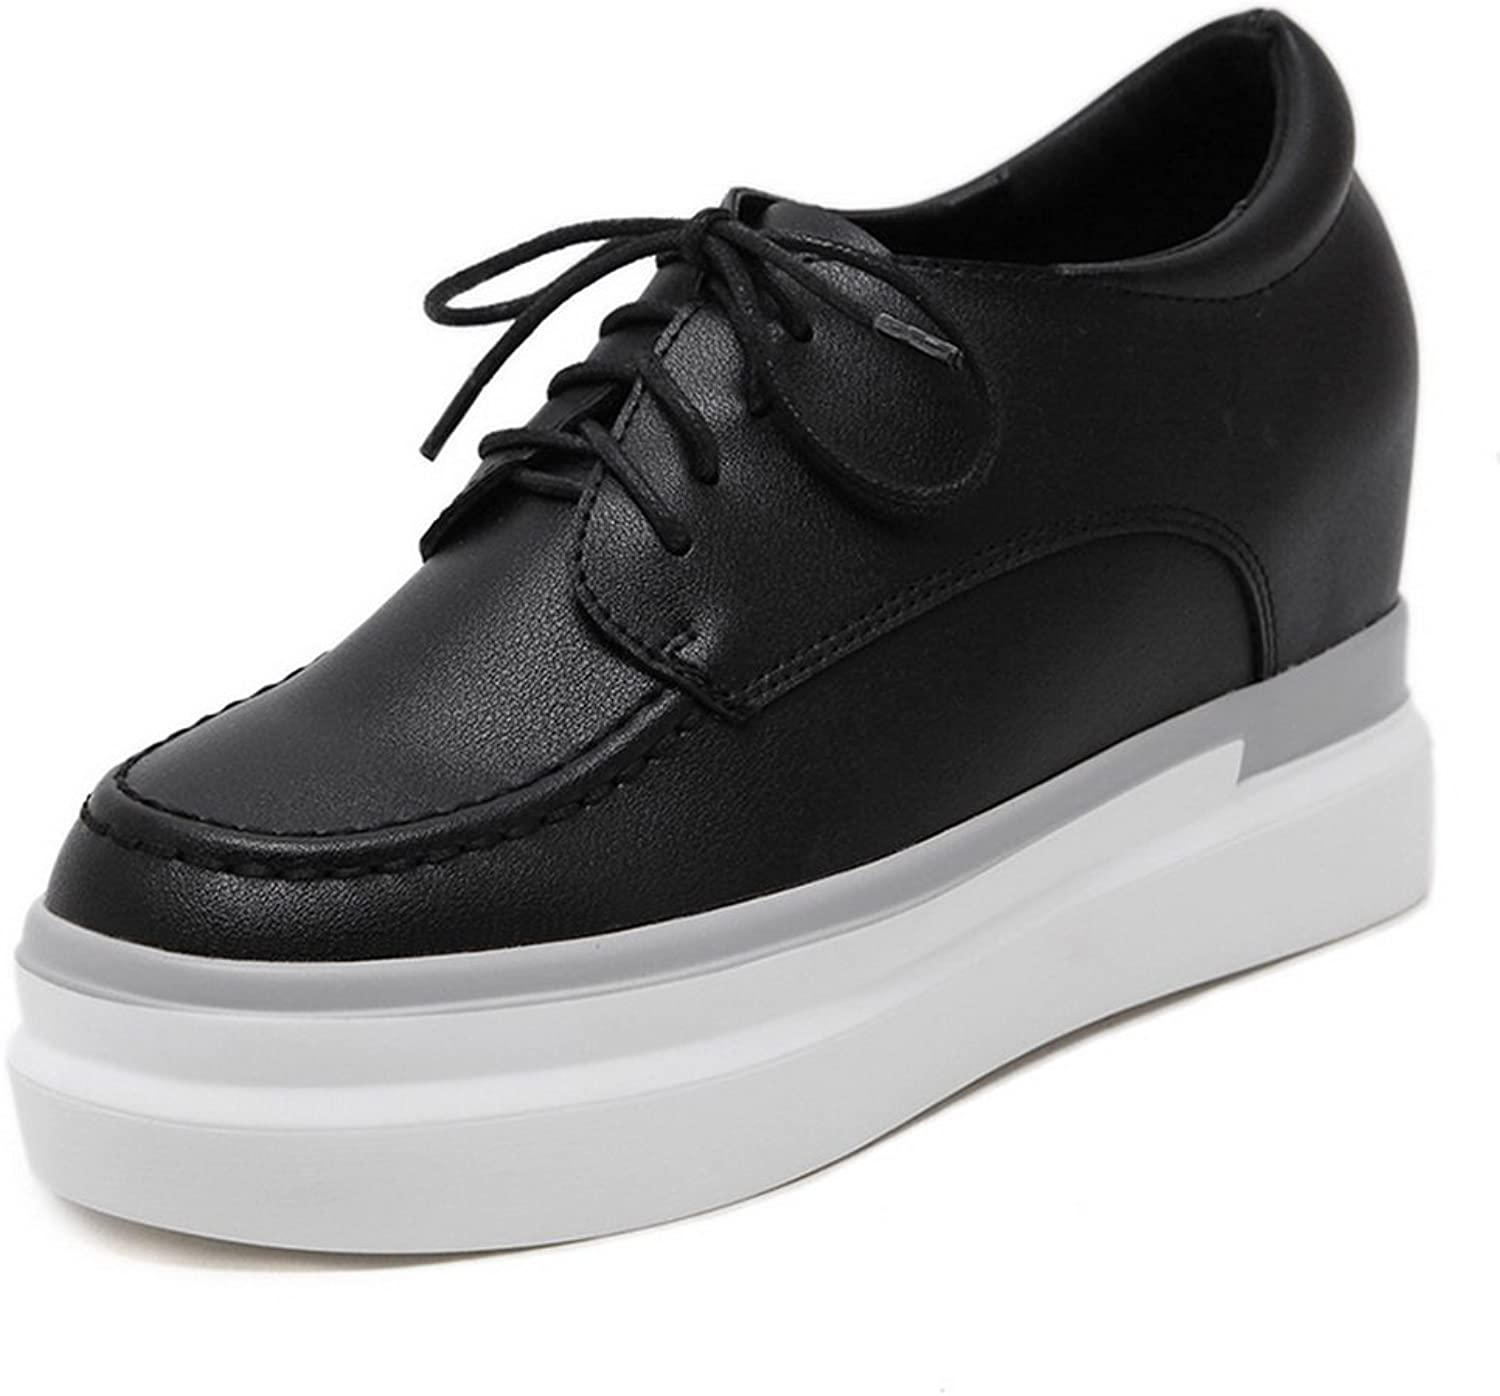 1TO9 Womens Lace-Up Platform Heighten Inside Black Urethane Oxfords shoes - 5 B(M) US